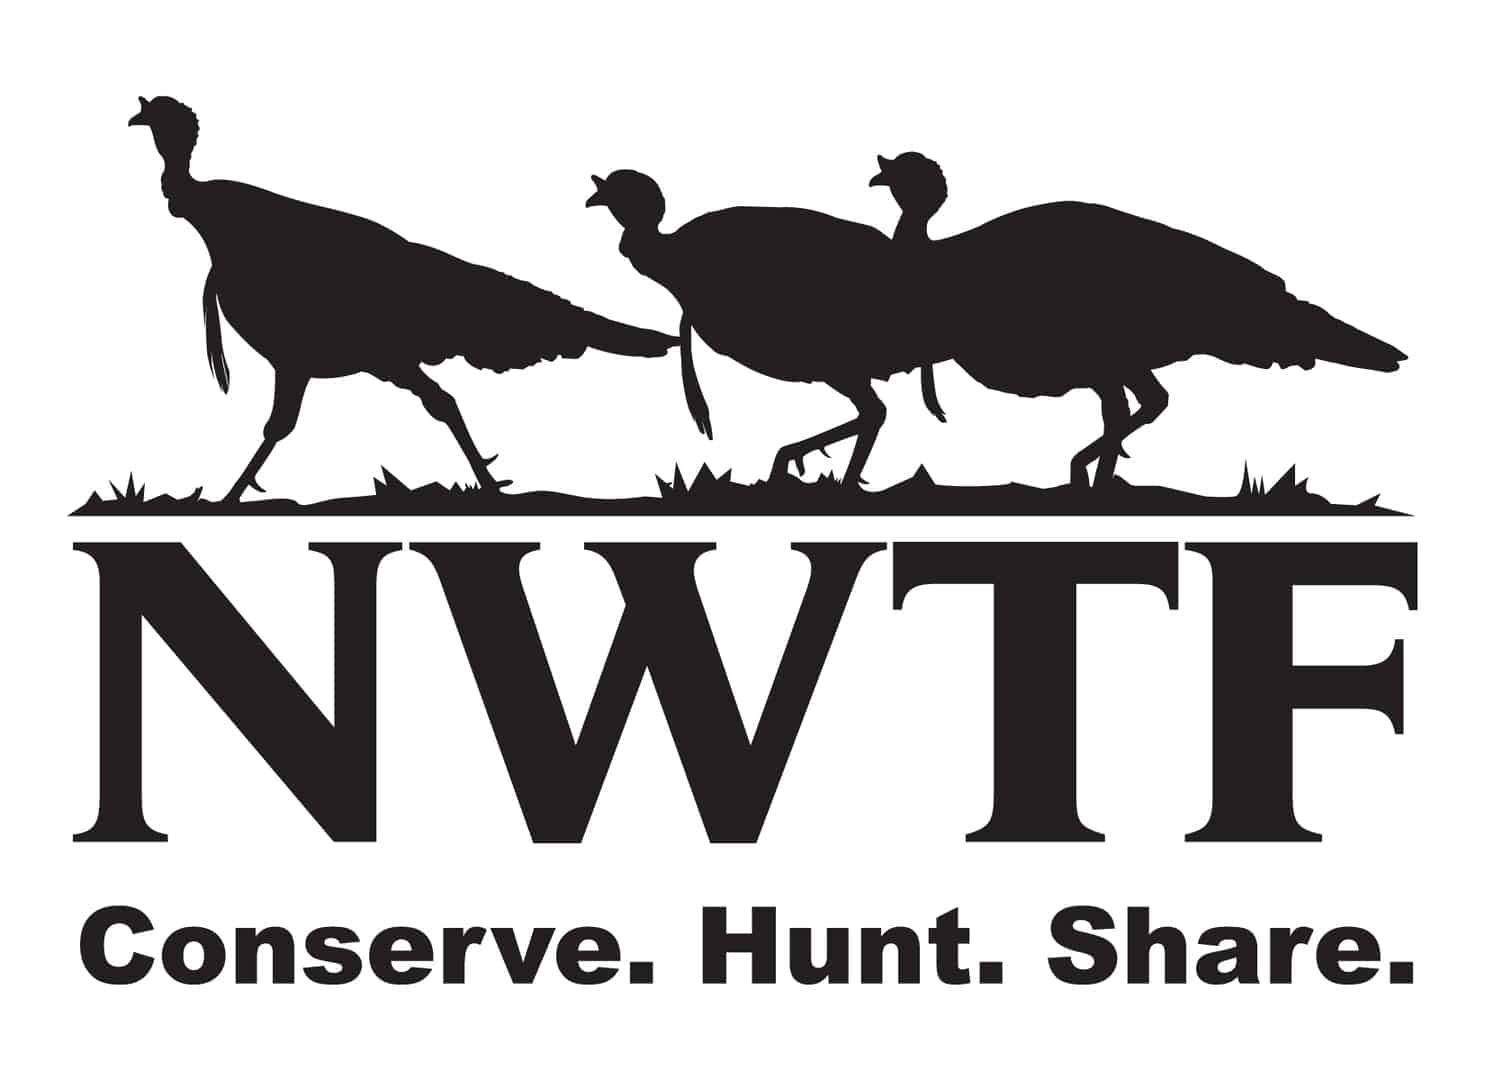 The NWTF found conferencing solutions that cut communication costs